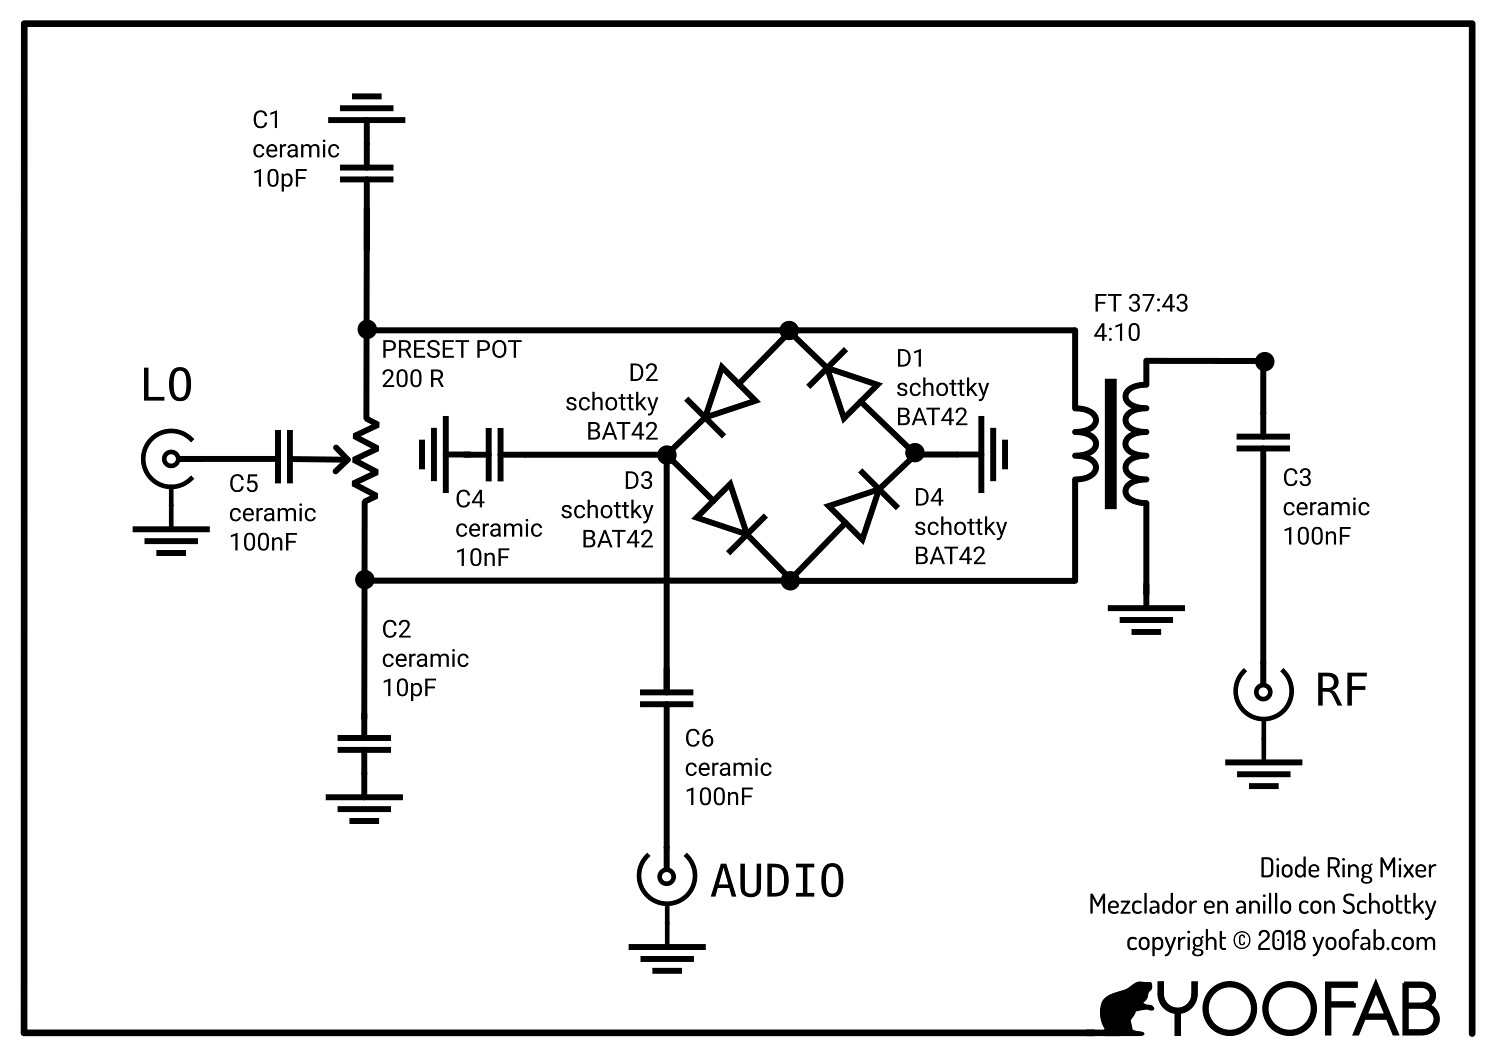 circuit diagram of the YooFab Diode Ring Mixer